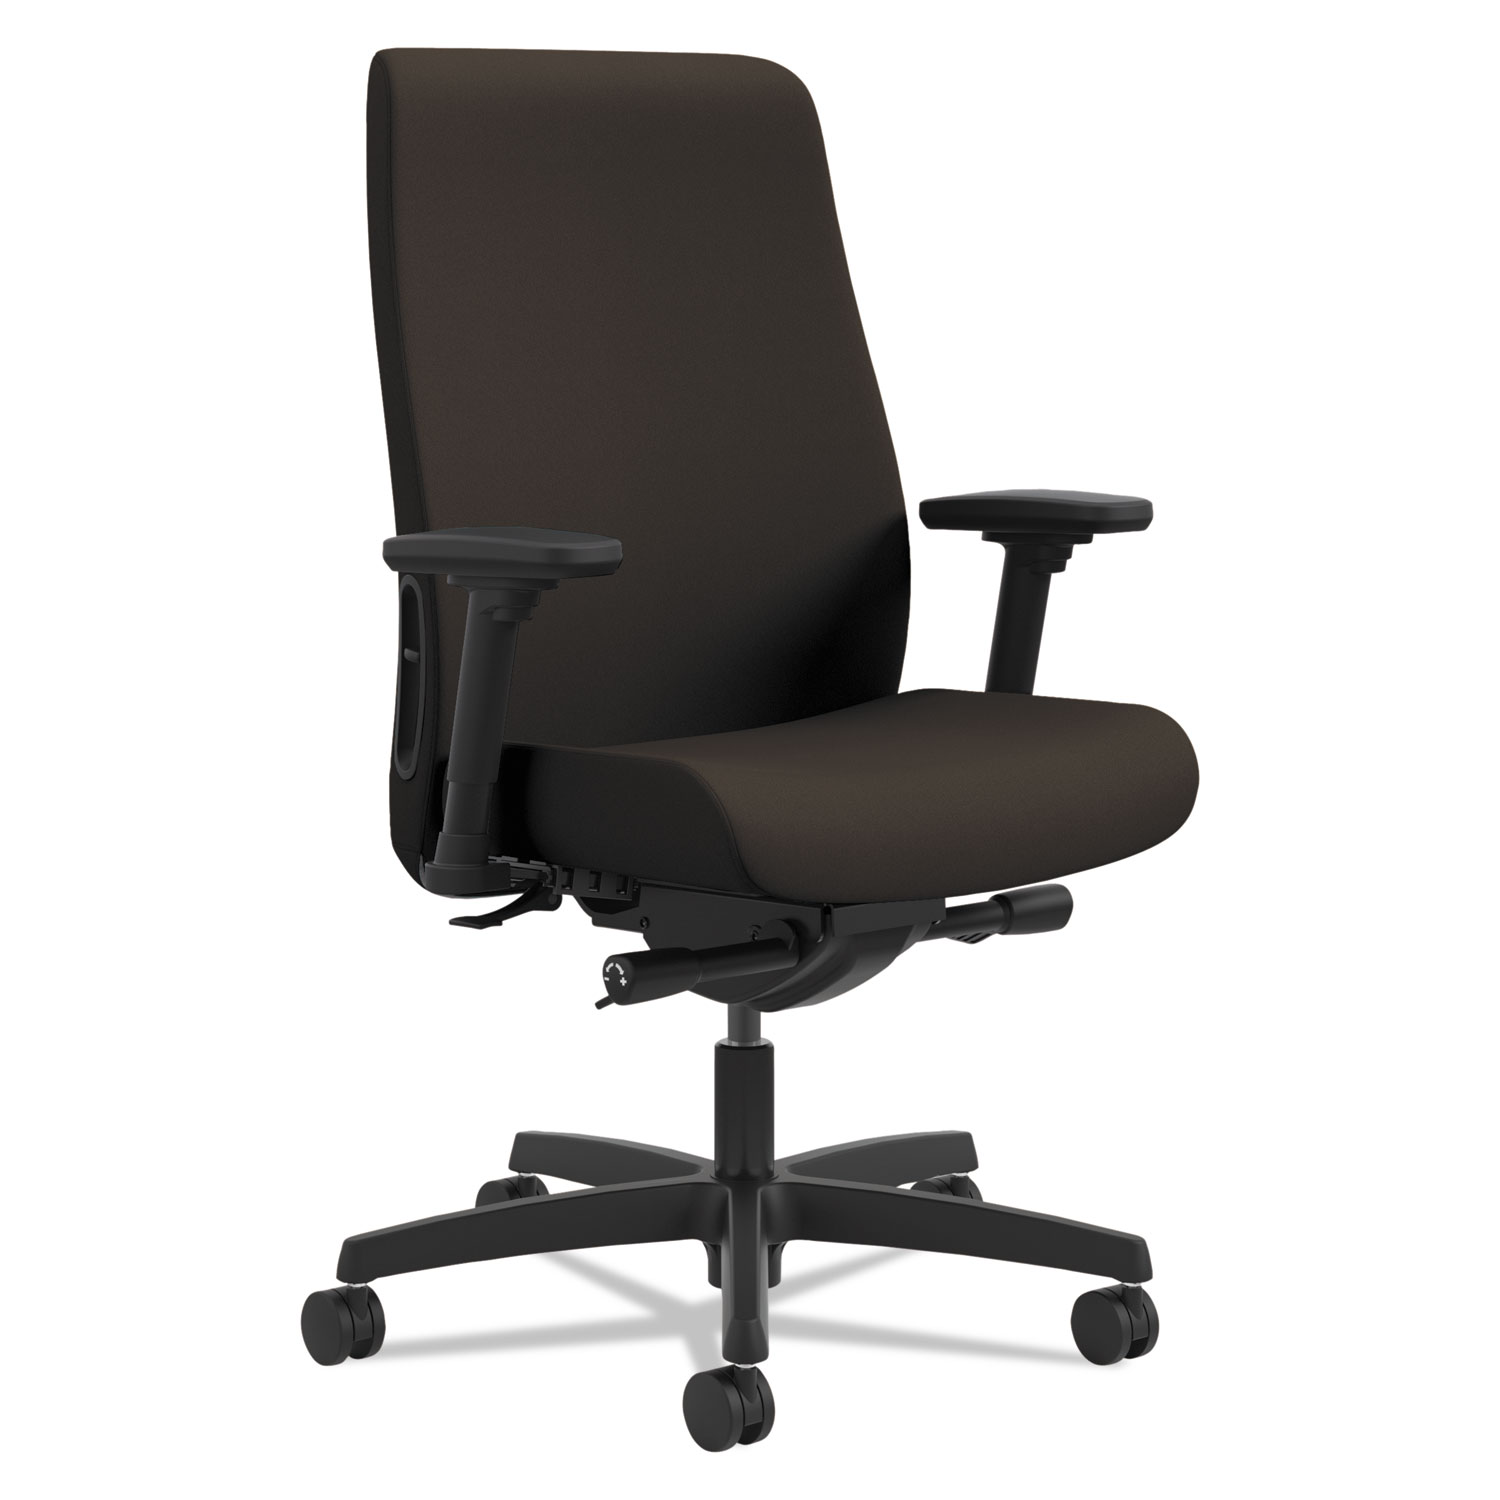 Work Chair Get Endorse Upholstered Mid Back Work Chair And Other